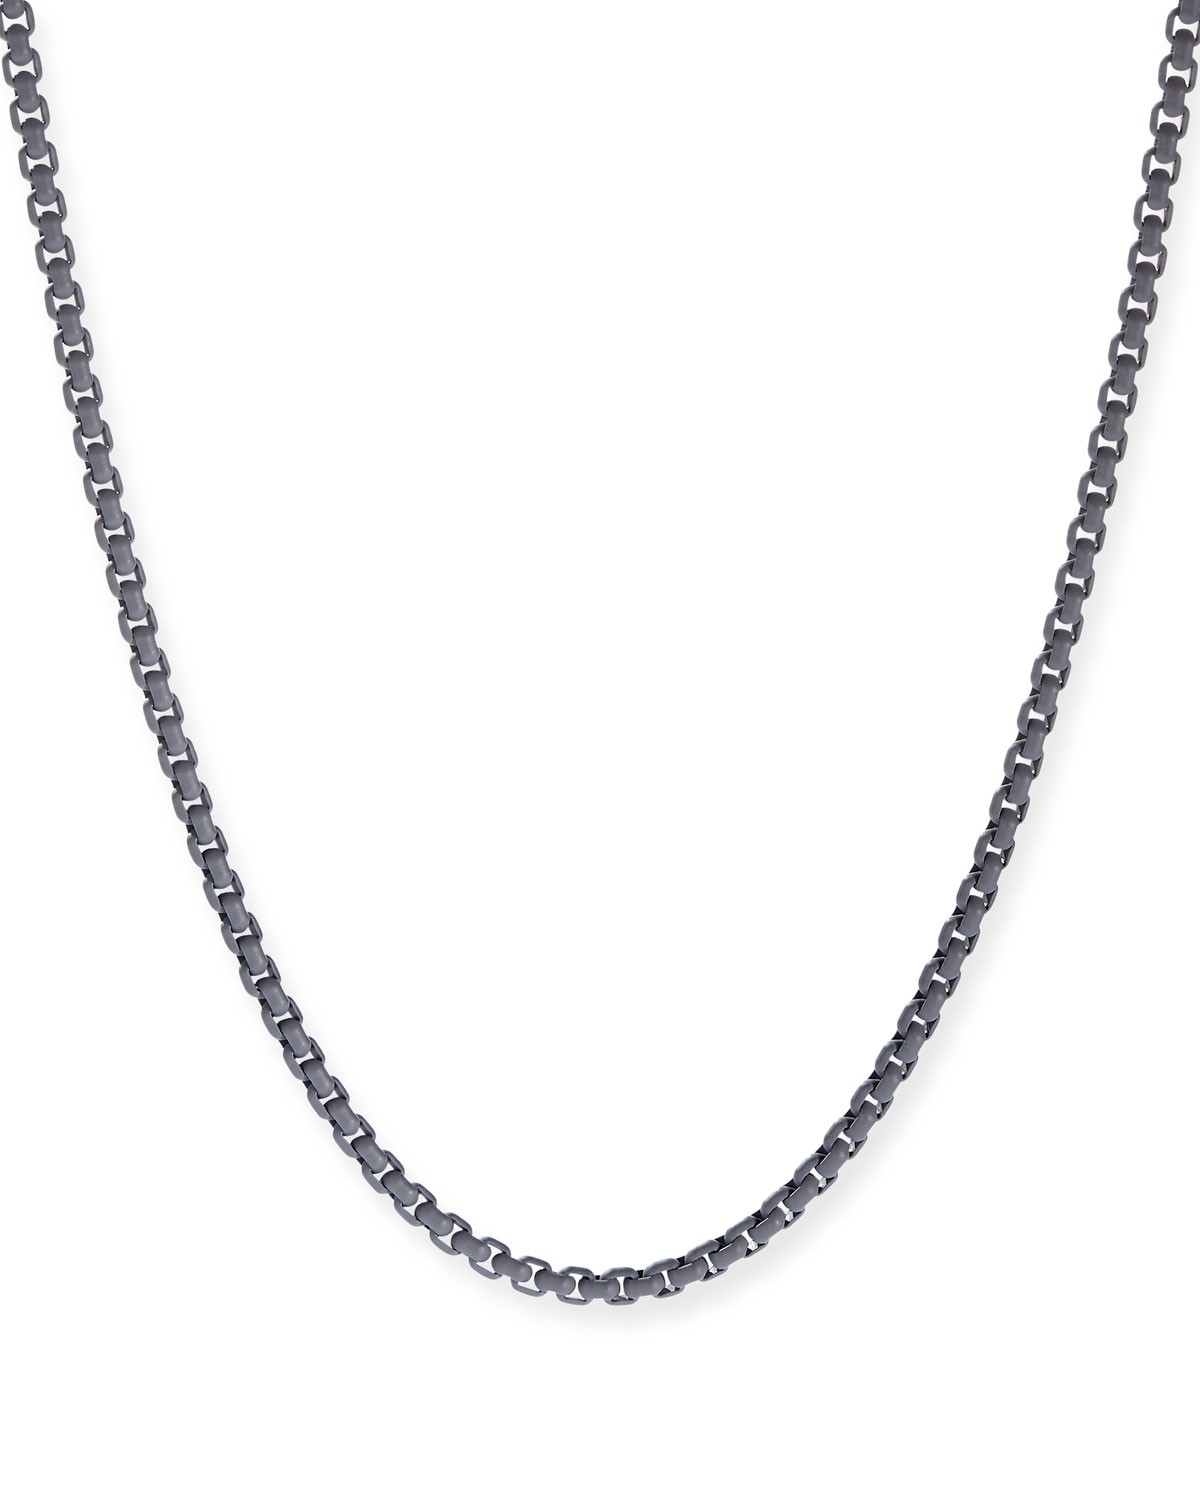 Men's Acrylic-Coated Stainless Steel Box Chain